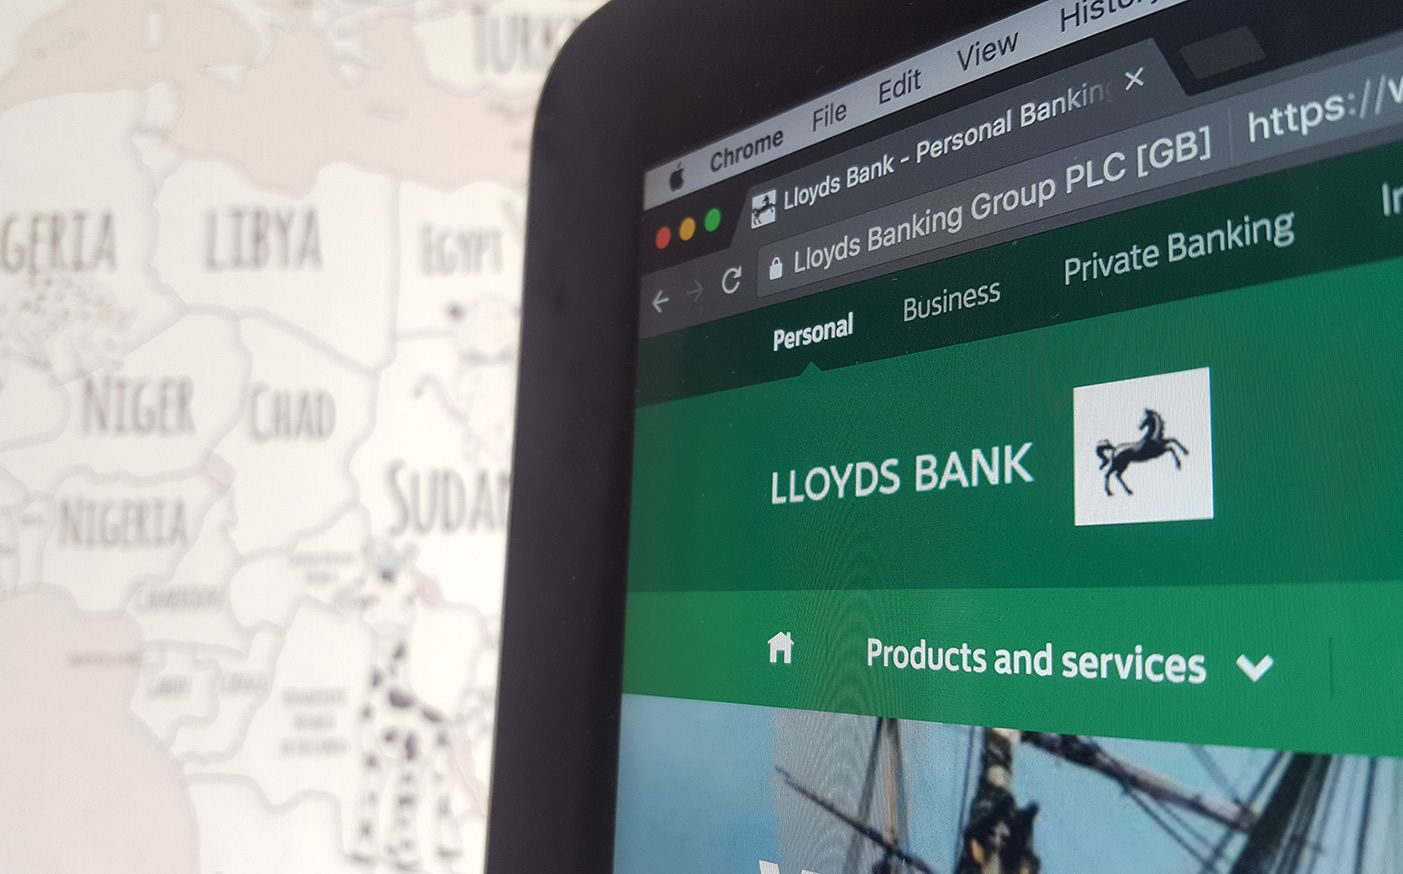 Lloyds Bank exchange rates